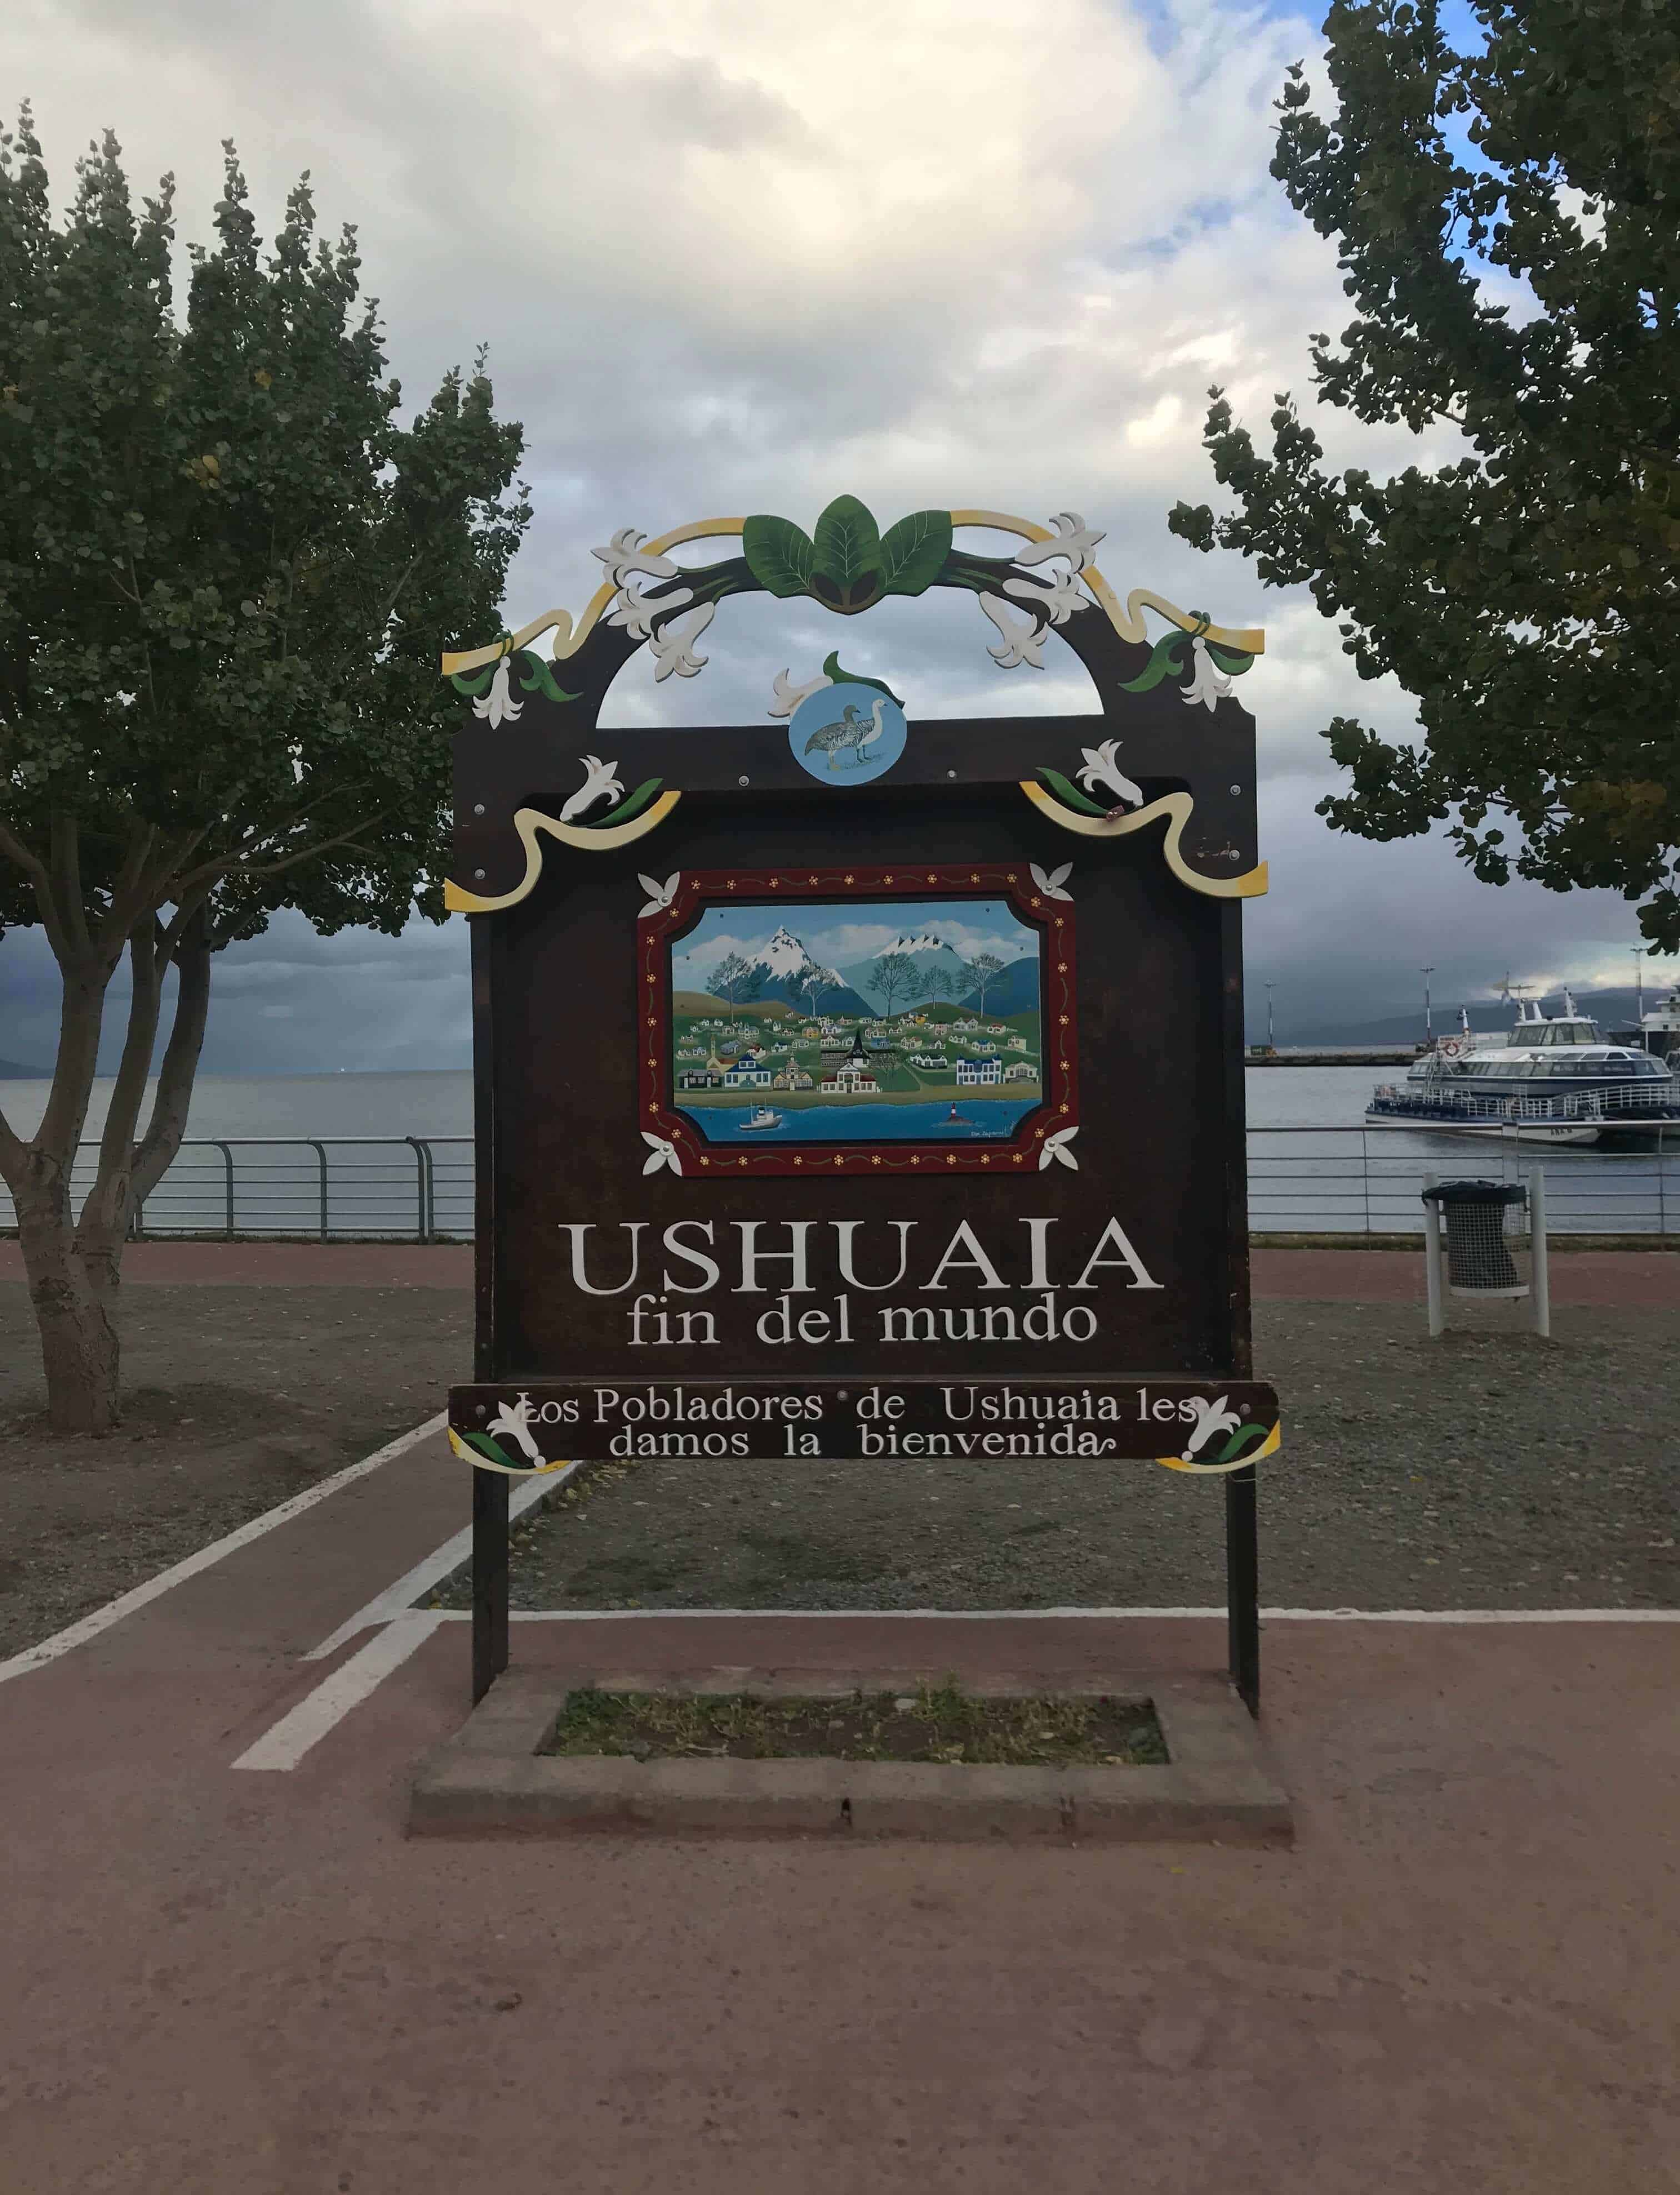 Visiting the end of the world in Ushuaia, Agentina